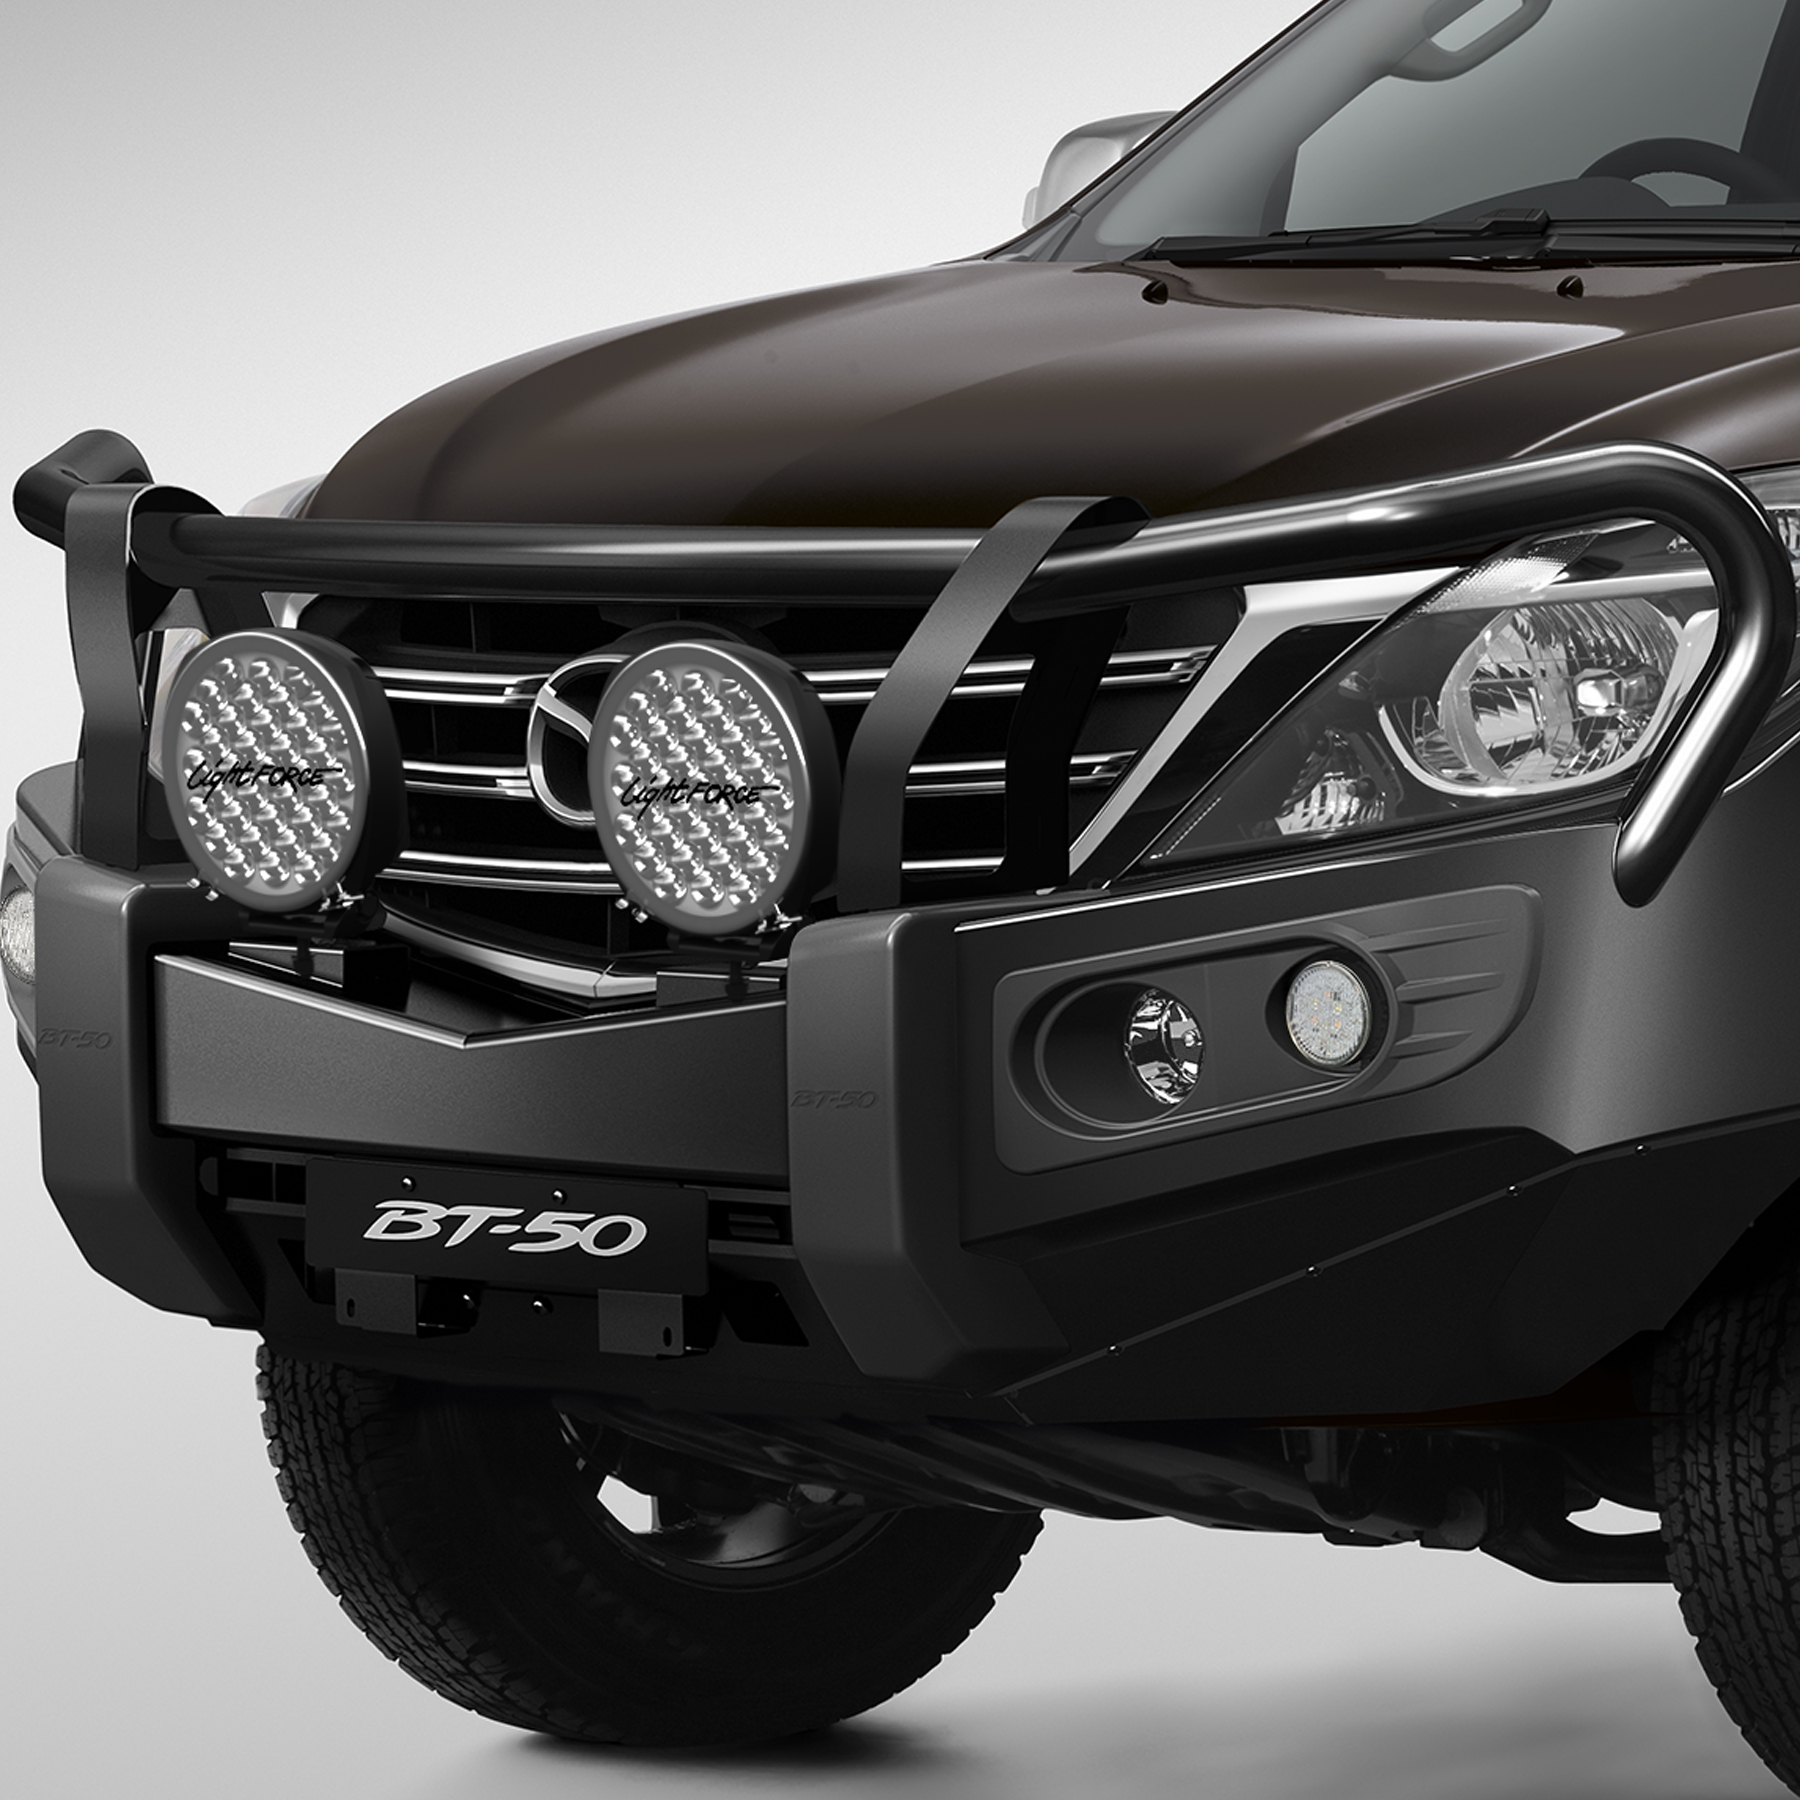 Mazda Accessories | Personalise Your Mazda BT-50